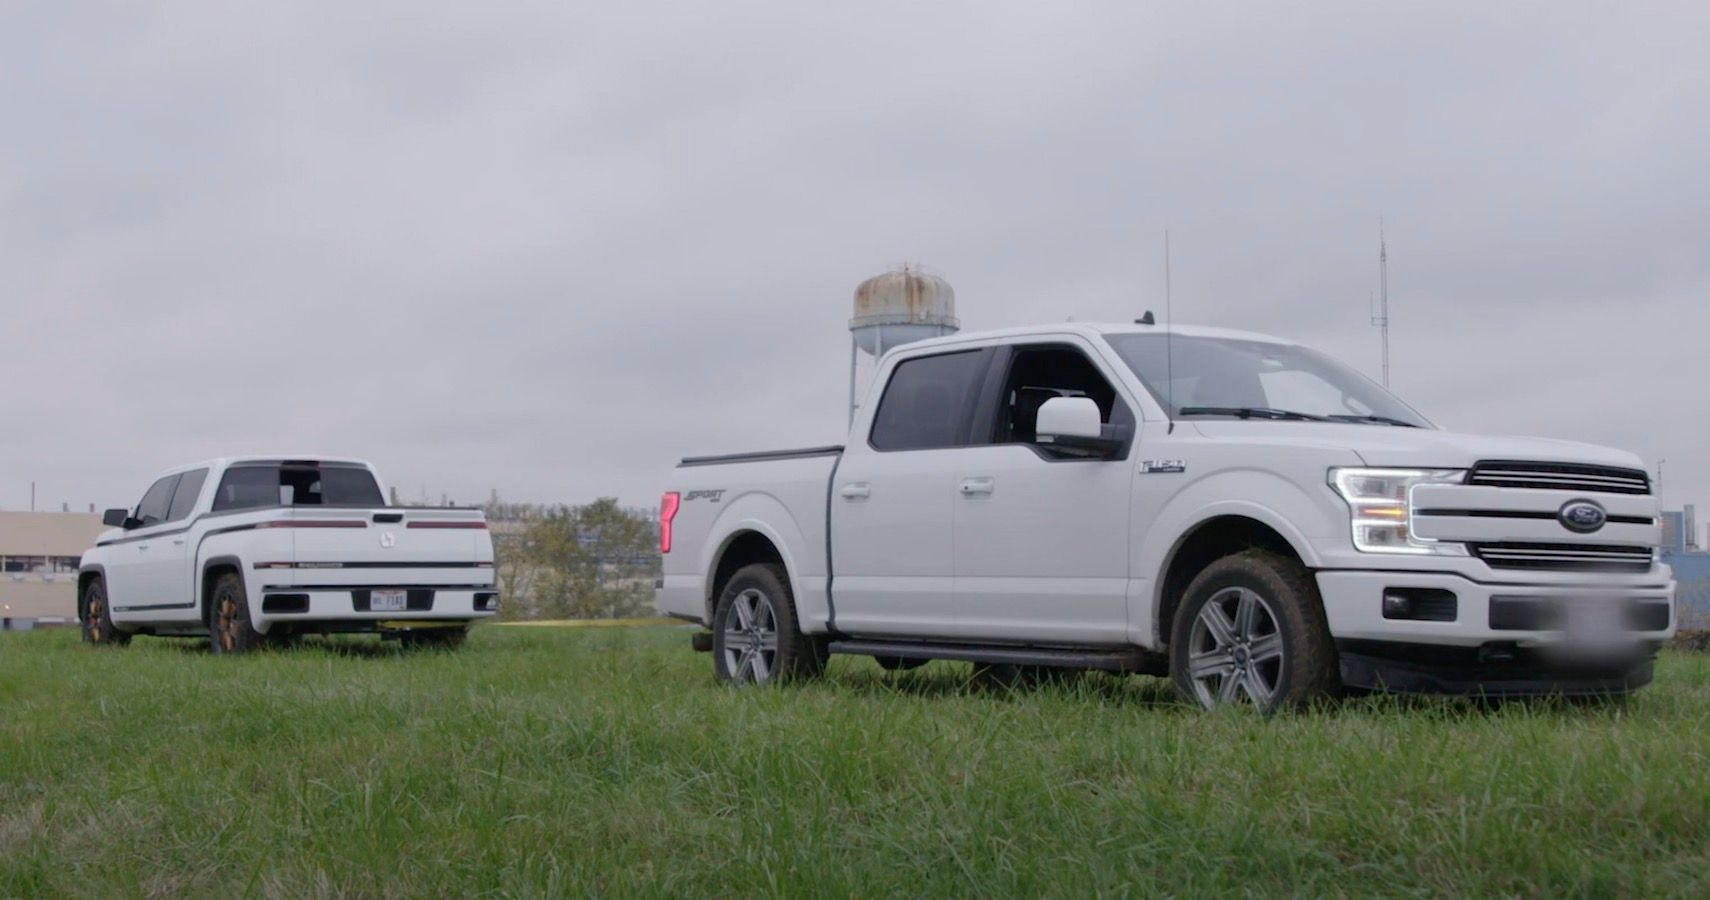 Lordstown Endurance Pickup Truck Drags A Ford F-150 Away As It Struggles For Grip